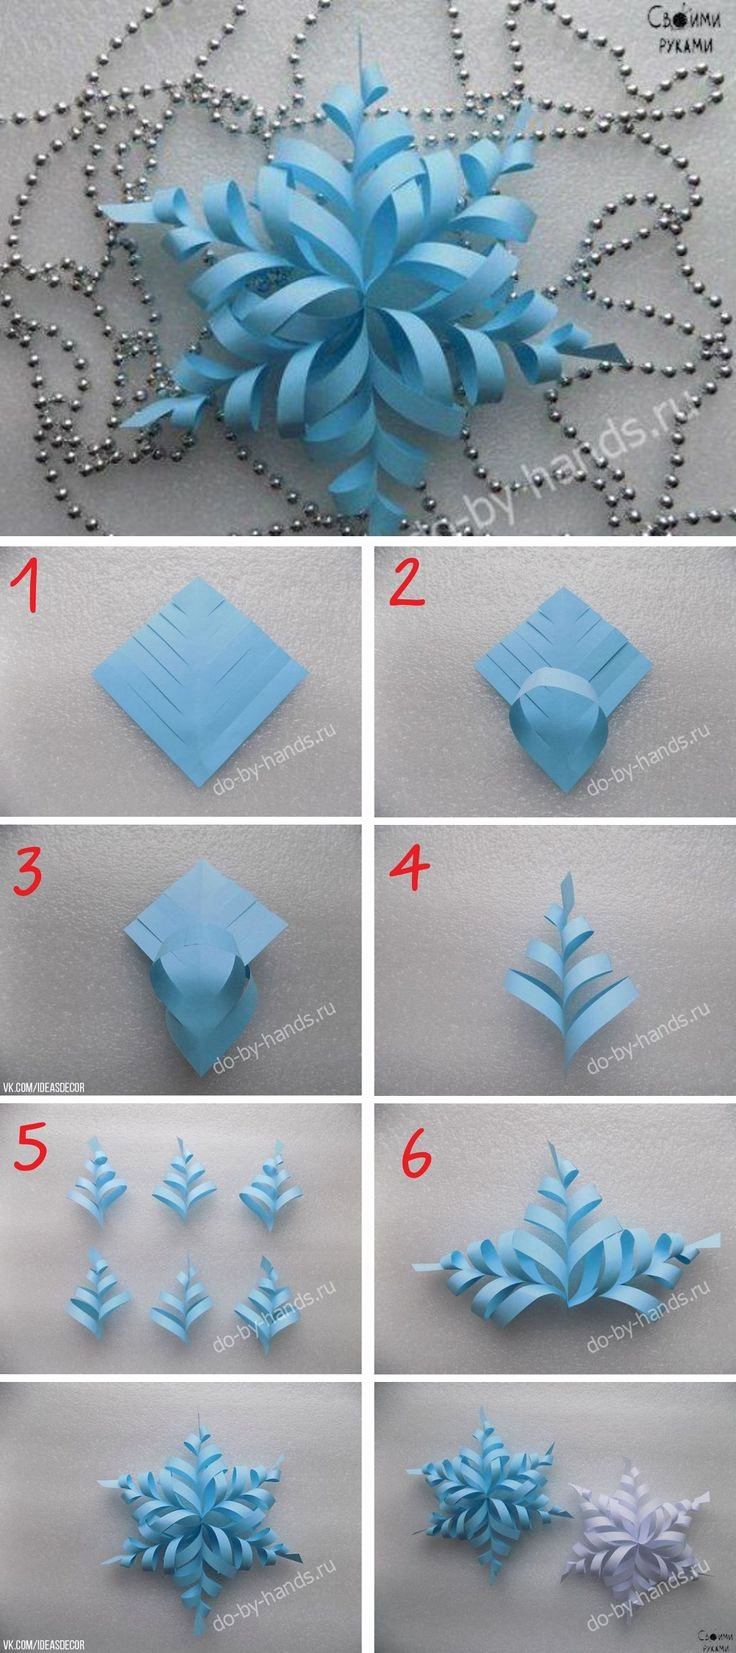 How to Make 3d Snowflakes Awesome Best 25 3d Paper Snowflakes Ideas On Pinterest